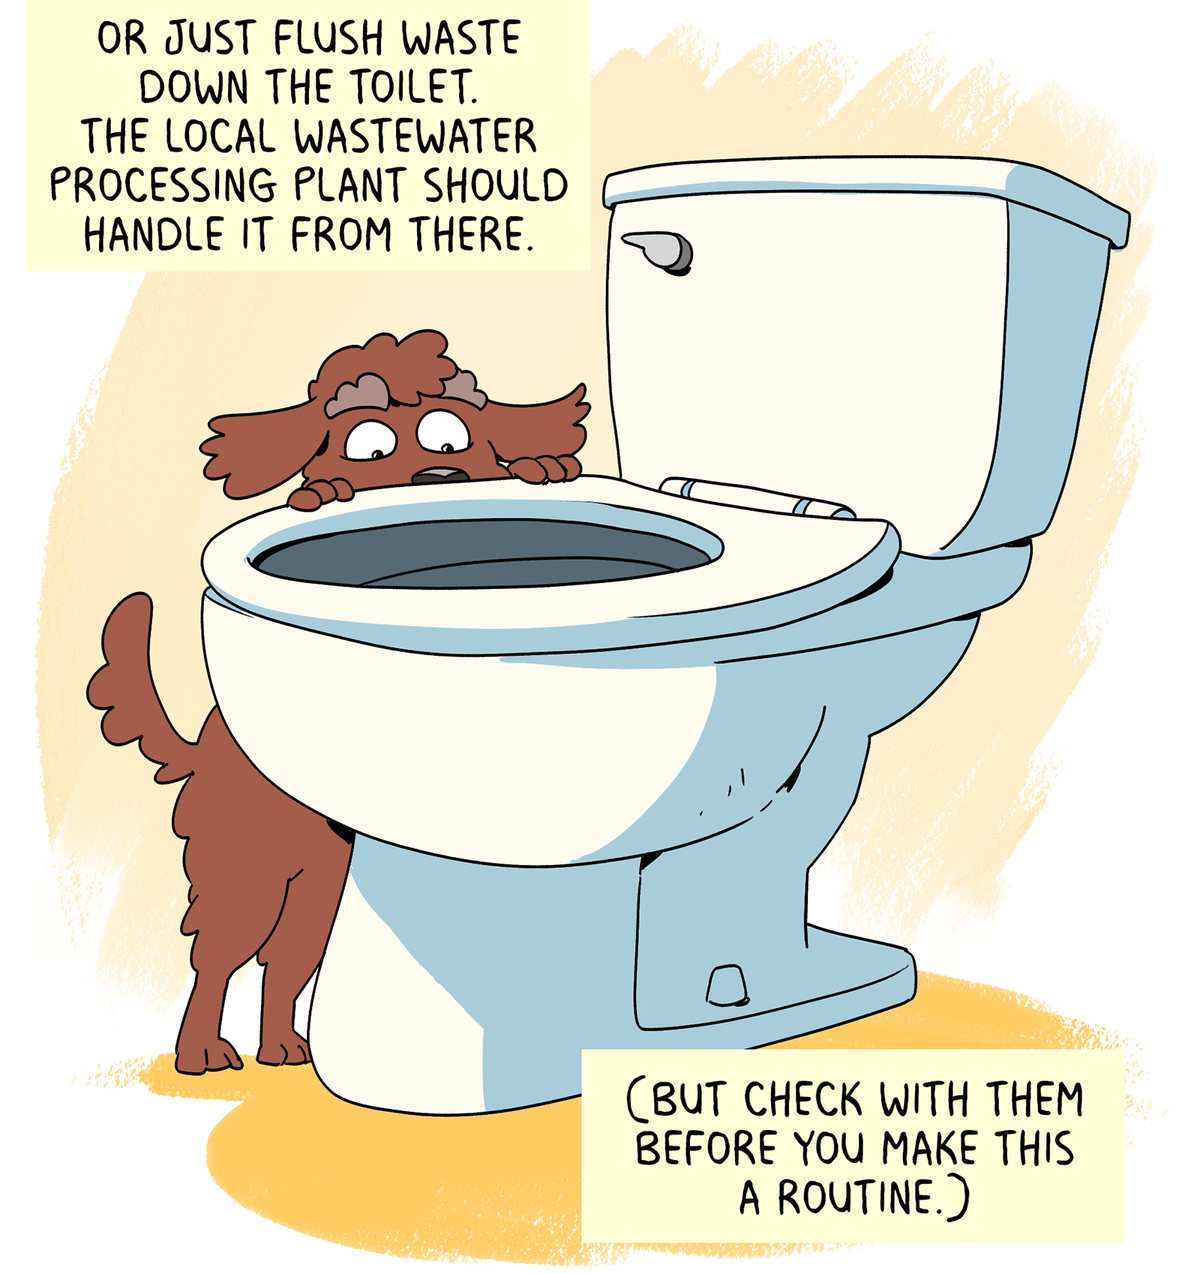 Or just flush it down the toilet. The local wastewater processing plant should handle it from there (but check with them before you make this a routine).